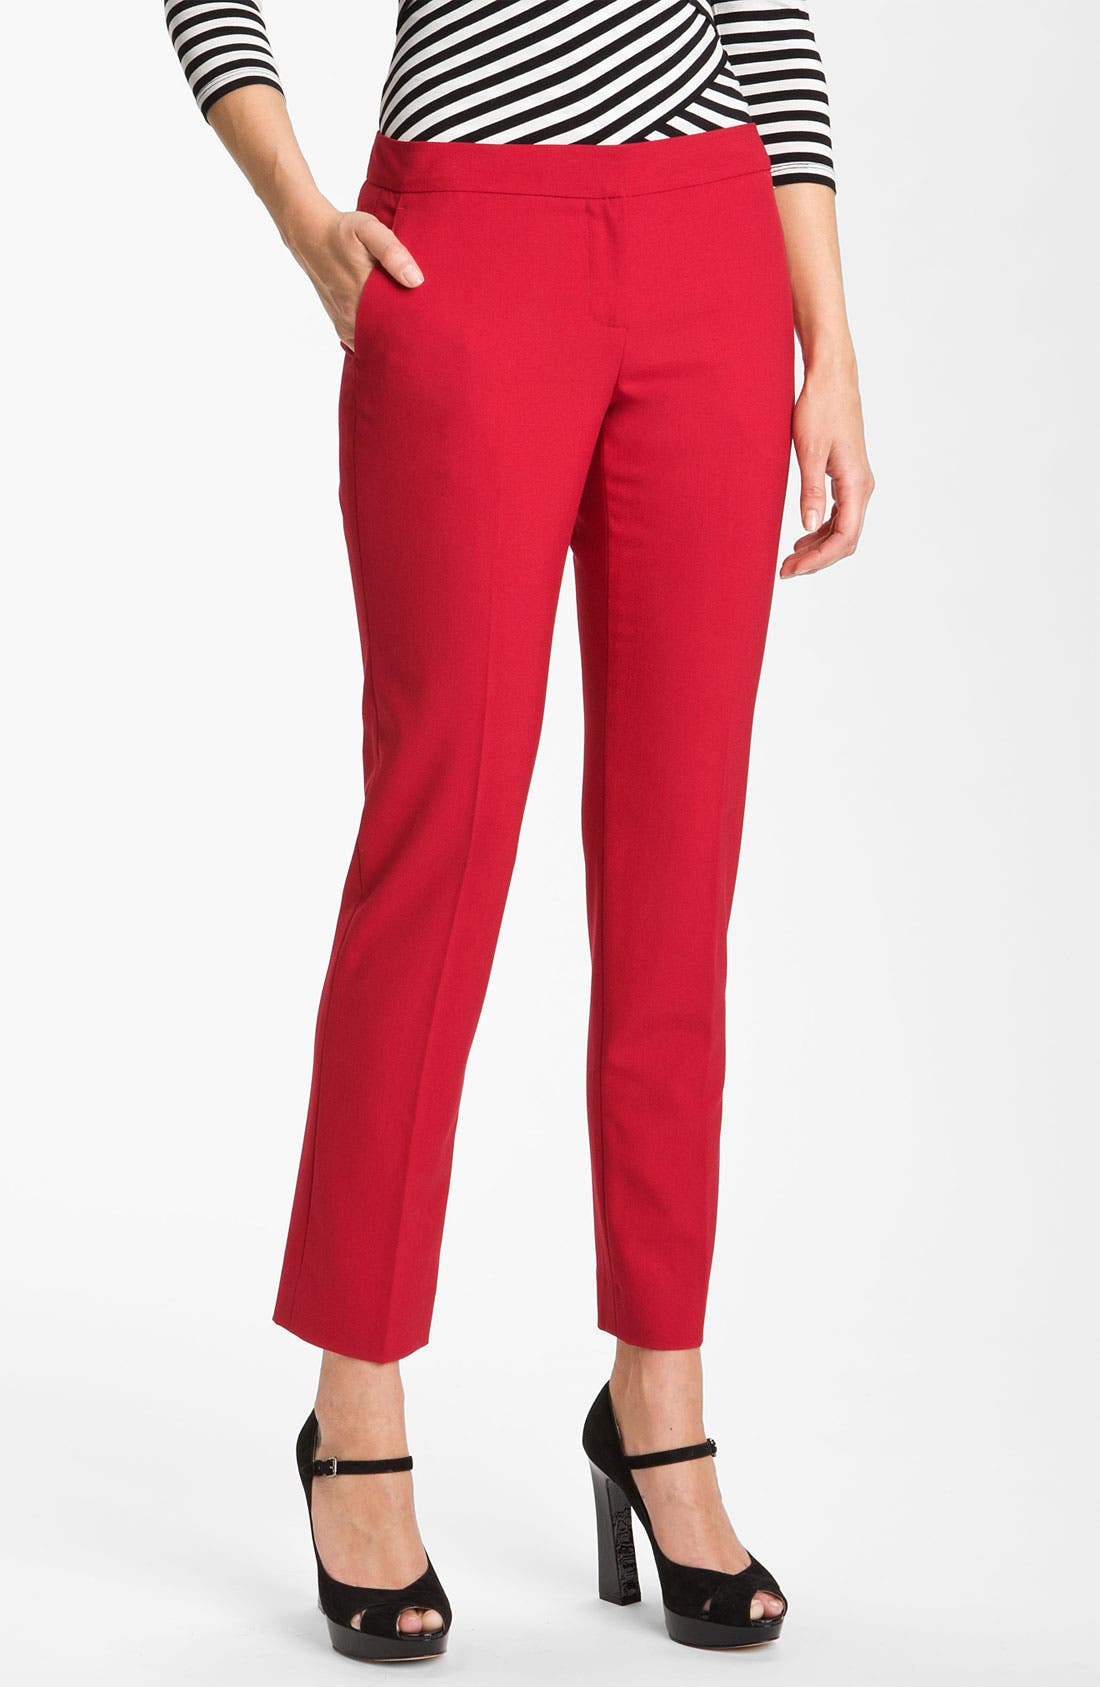 Alternate Image 1 Selected - Vince Camuto Skinny Ankle Pants (Petite)